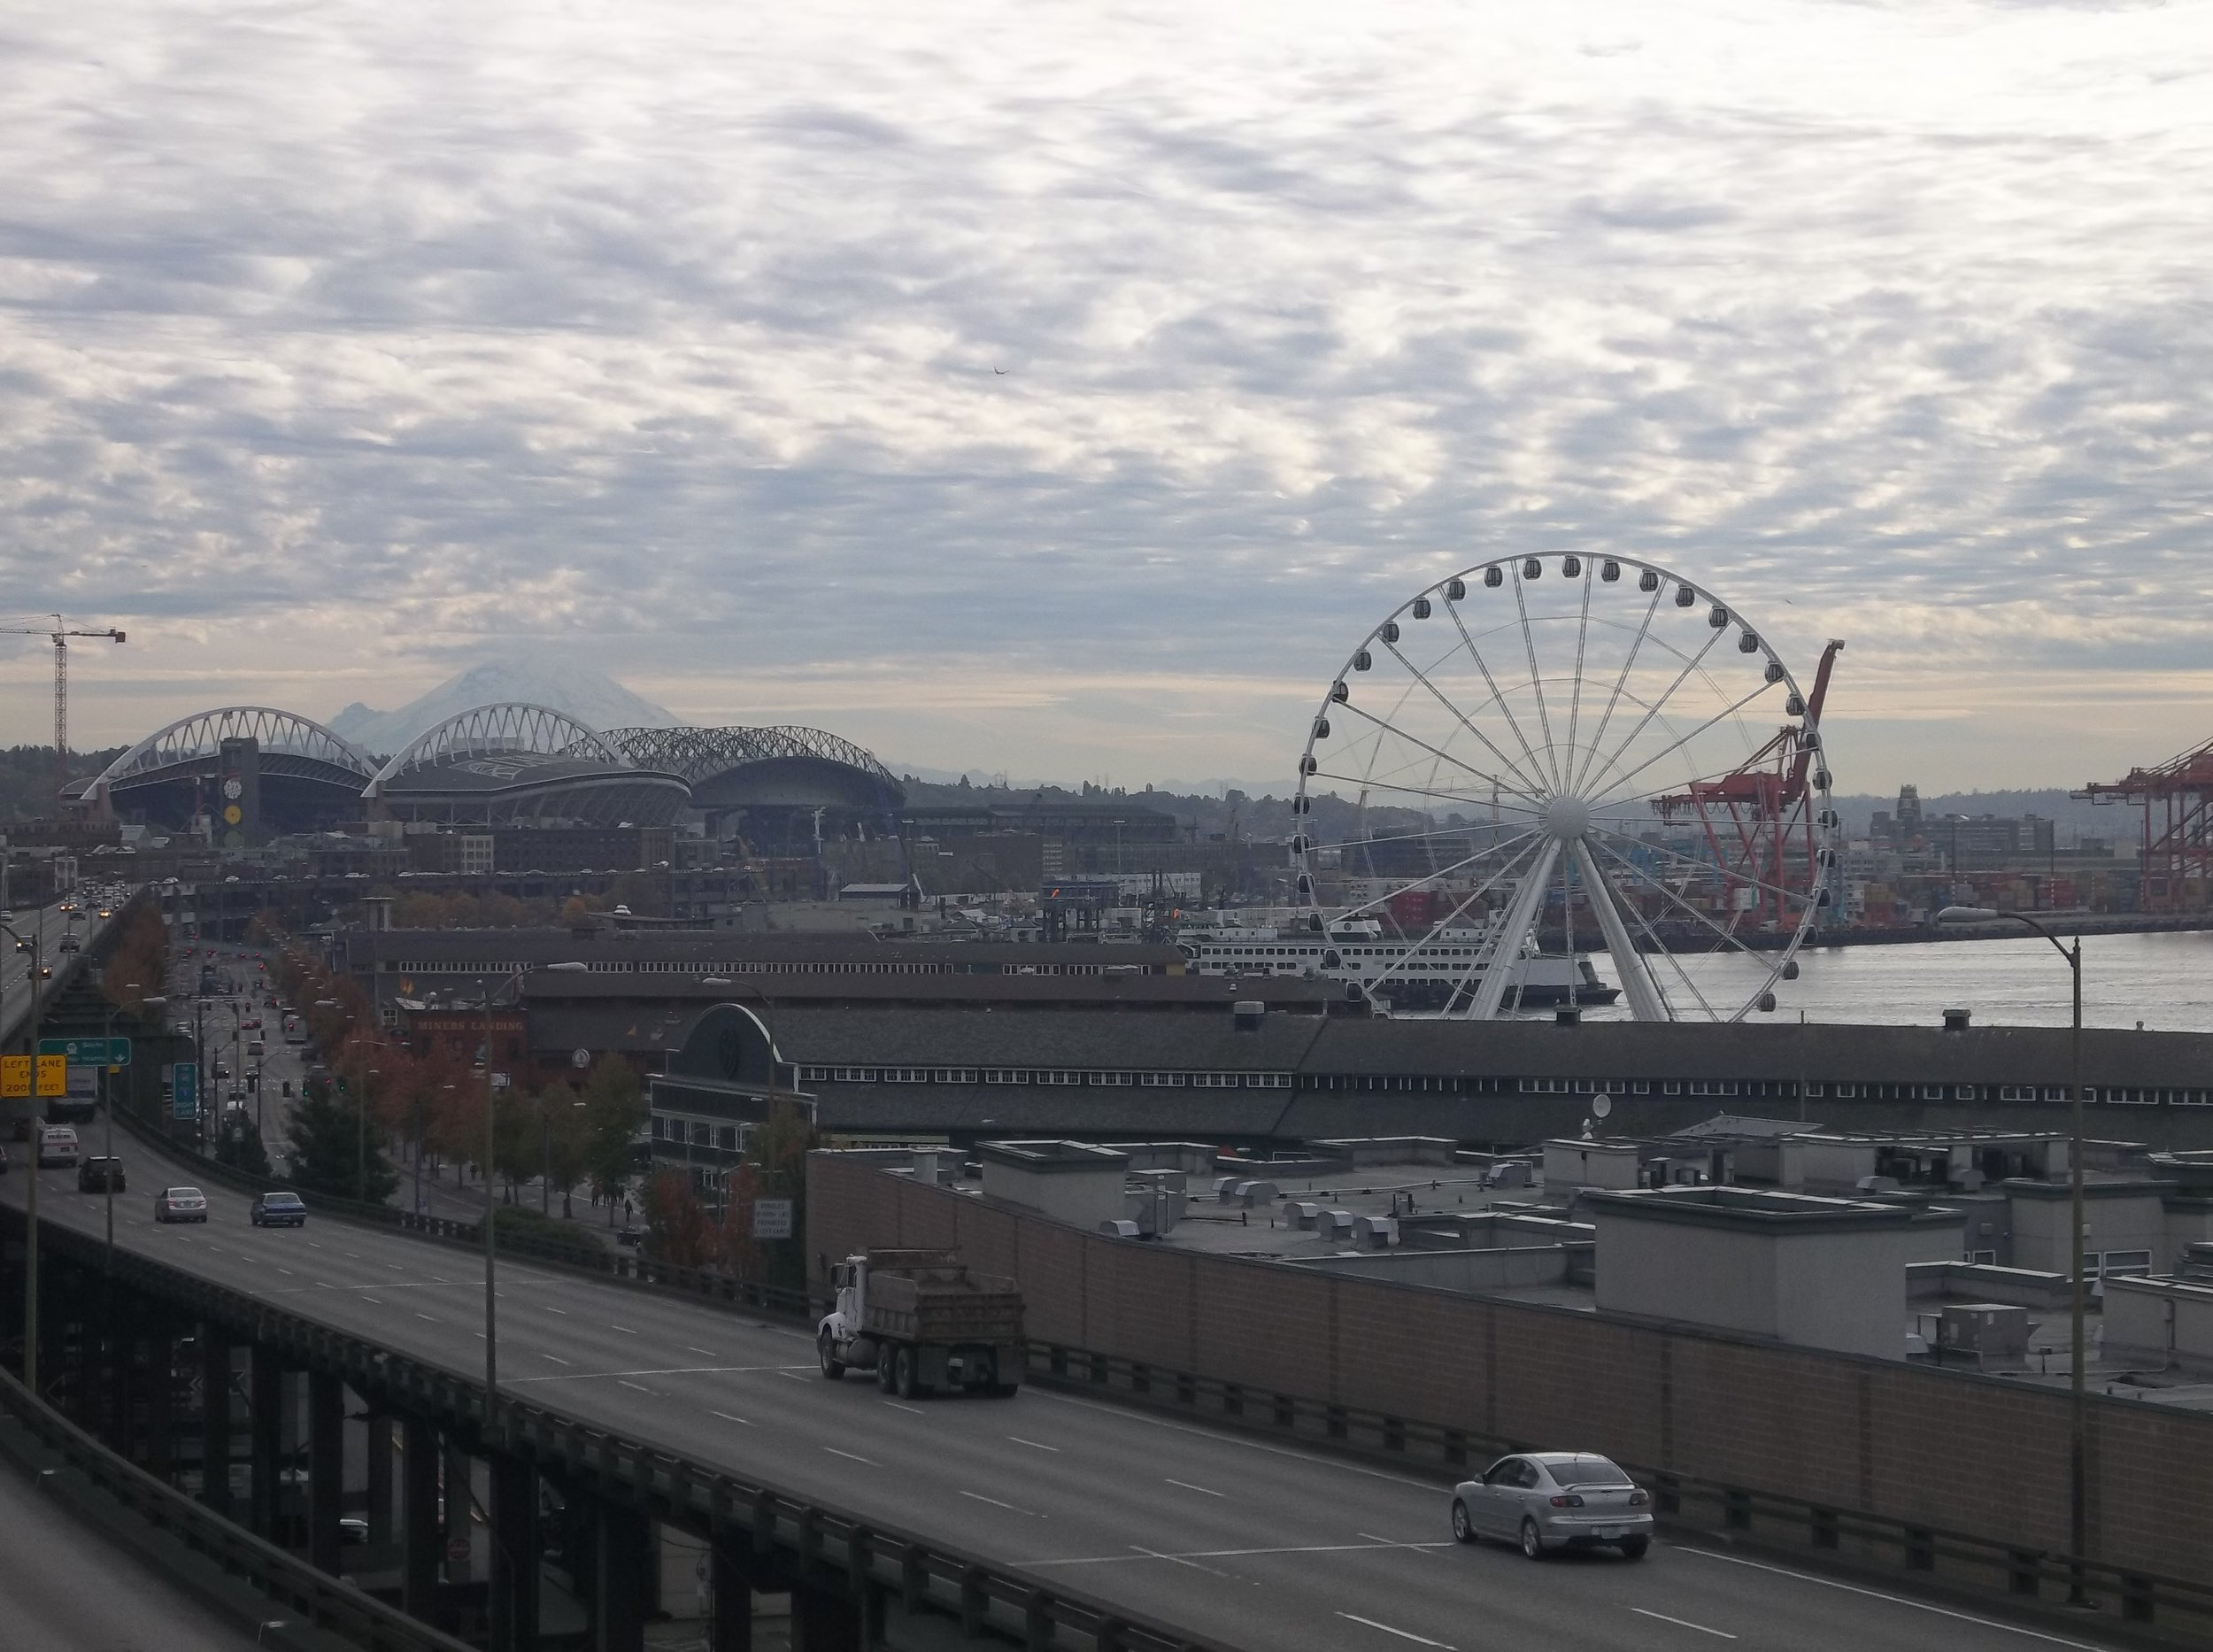 Visit Seattle, Washington - October 17, 2012